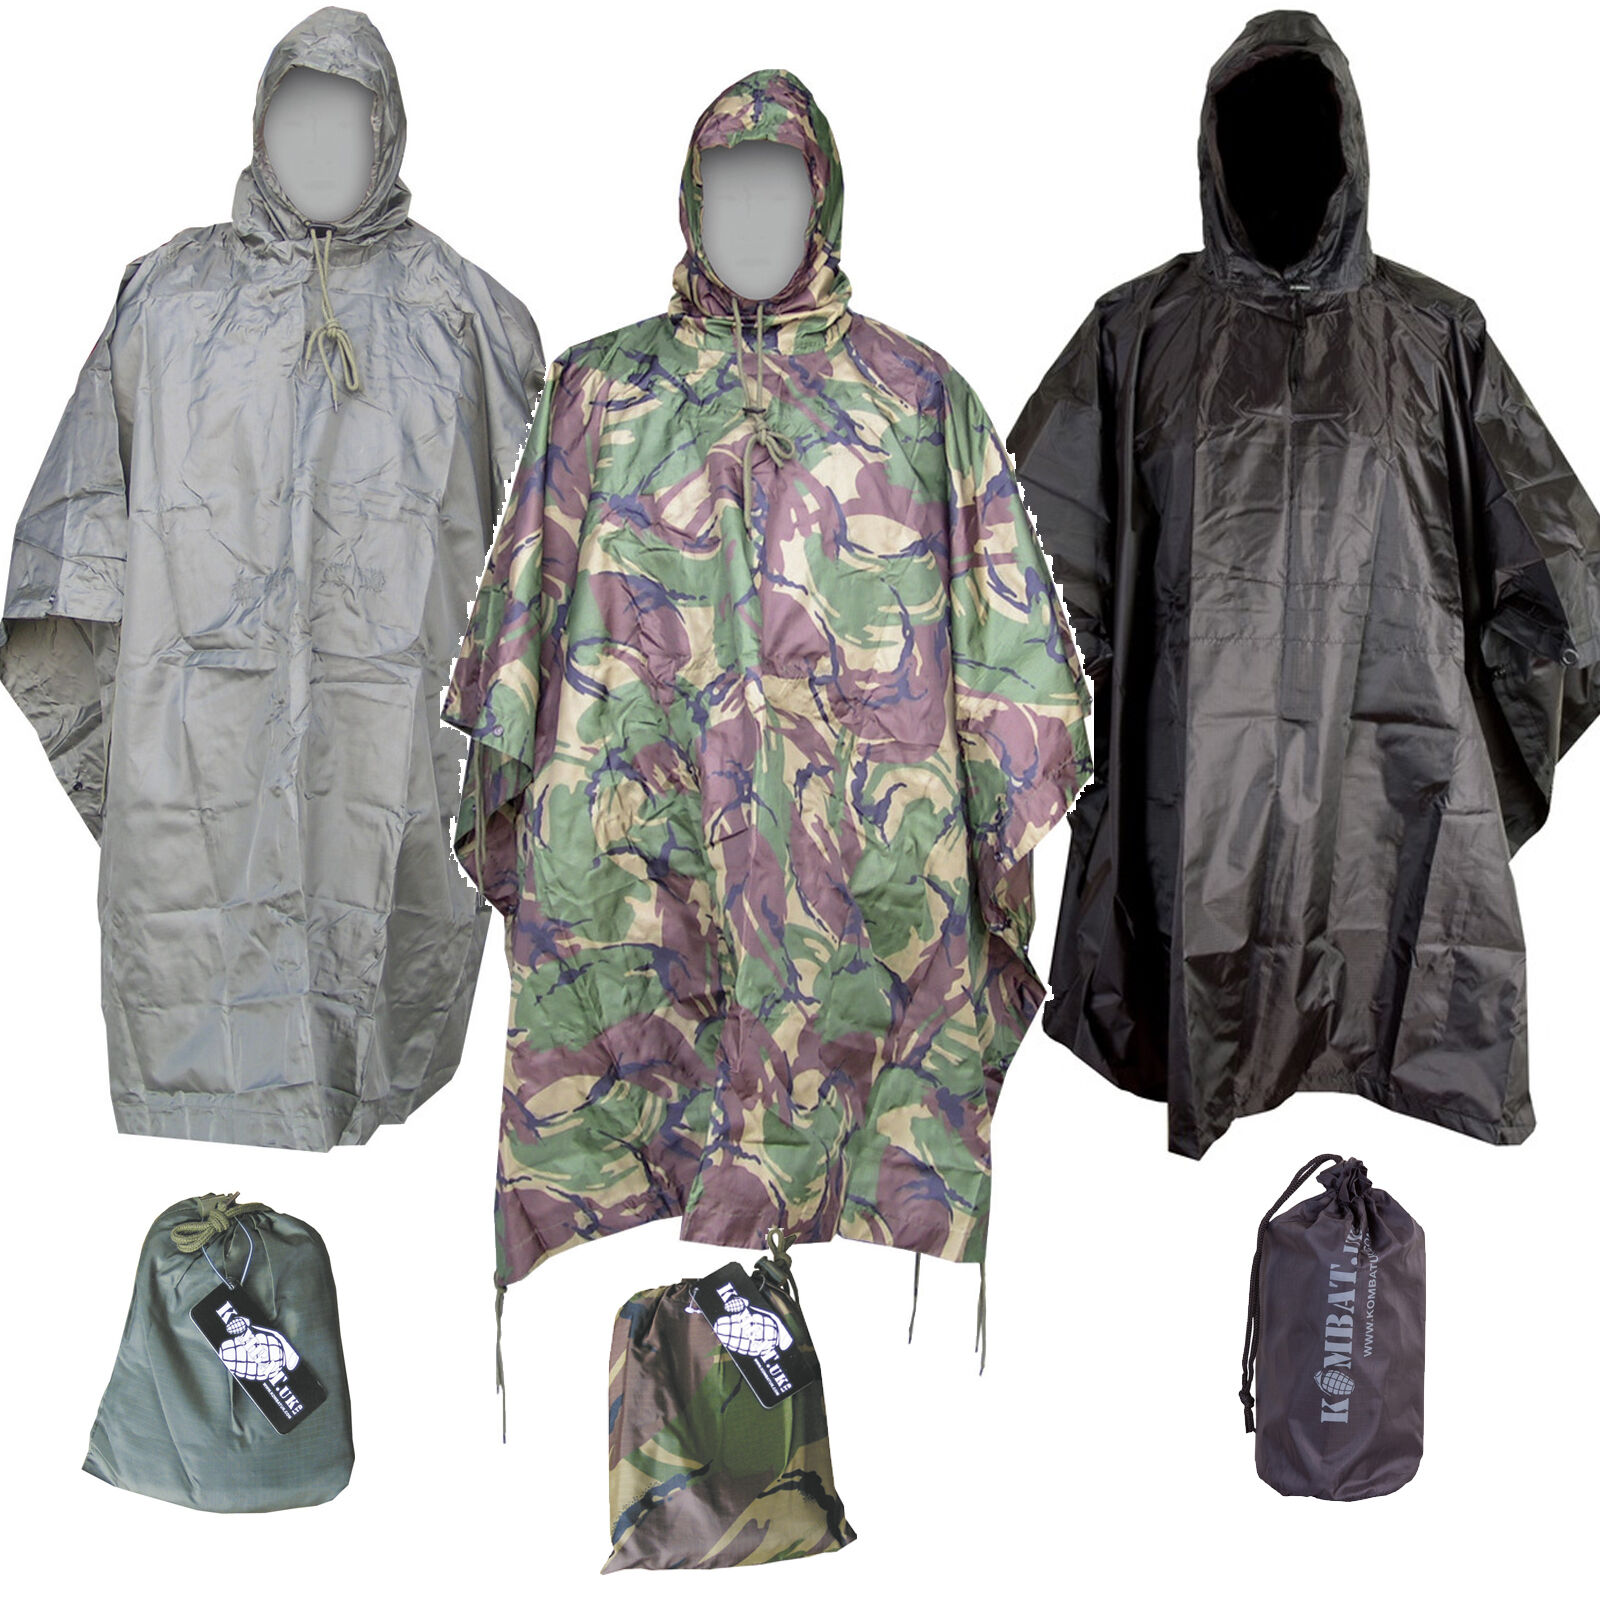 High Qualität Waterproof Poncho Ideal Flooding For Hiking, Cycling, Festivals, Flooding Ideal 6331a7